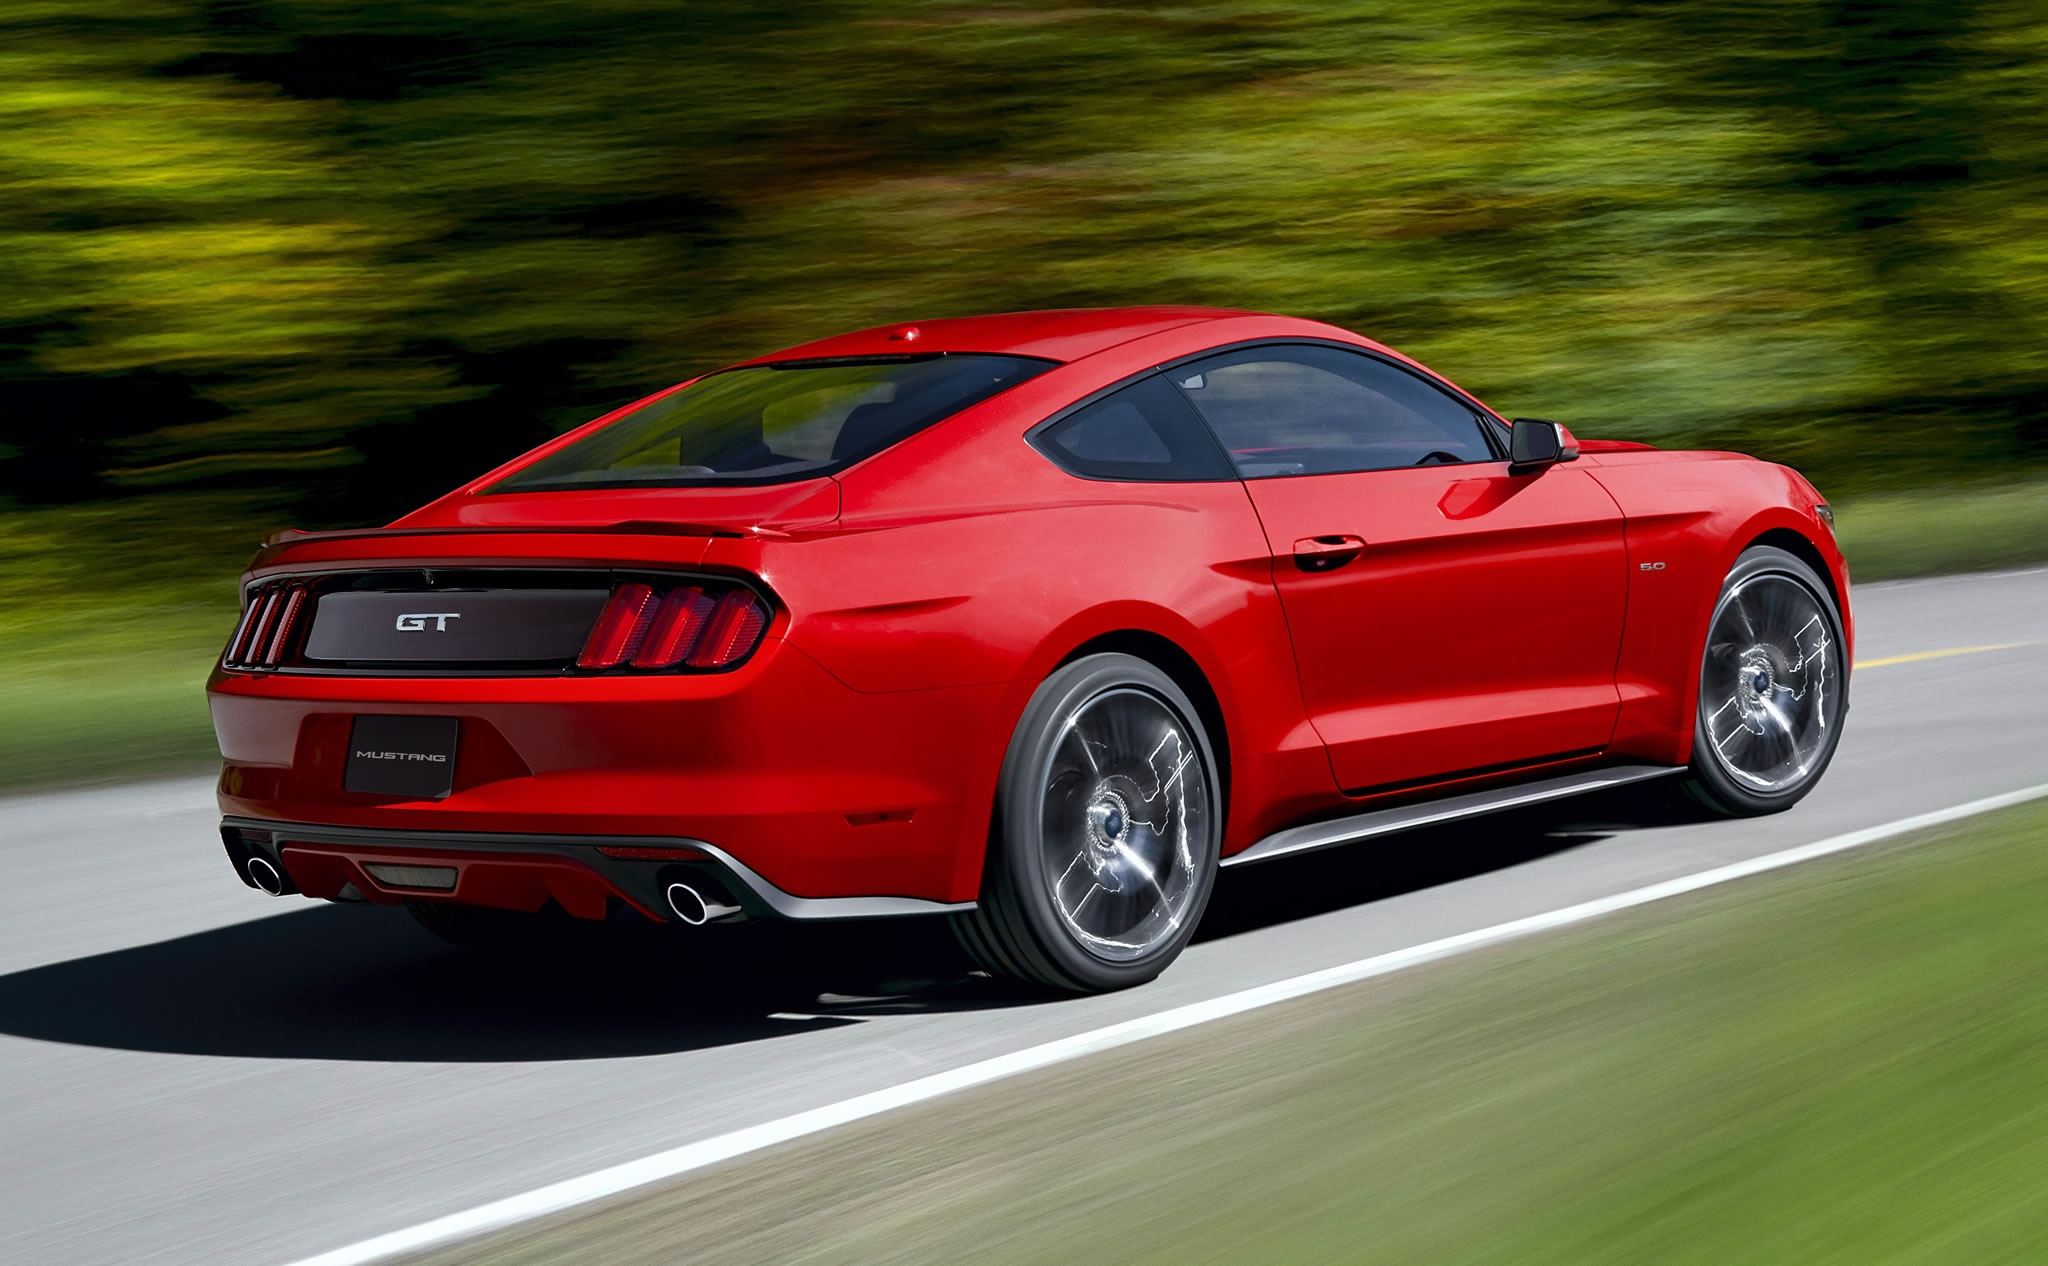 2015 ford mustang gt rear photo race red color size 2048 x 1266 nr 30 45. Black Bedroom Furniture Sets. Home Design Ideas